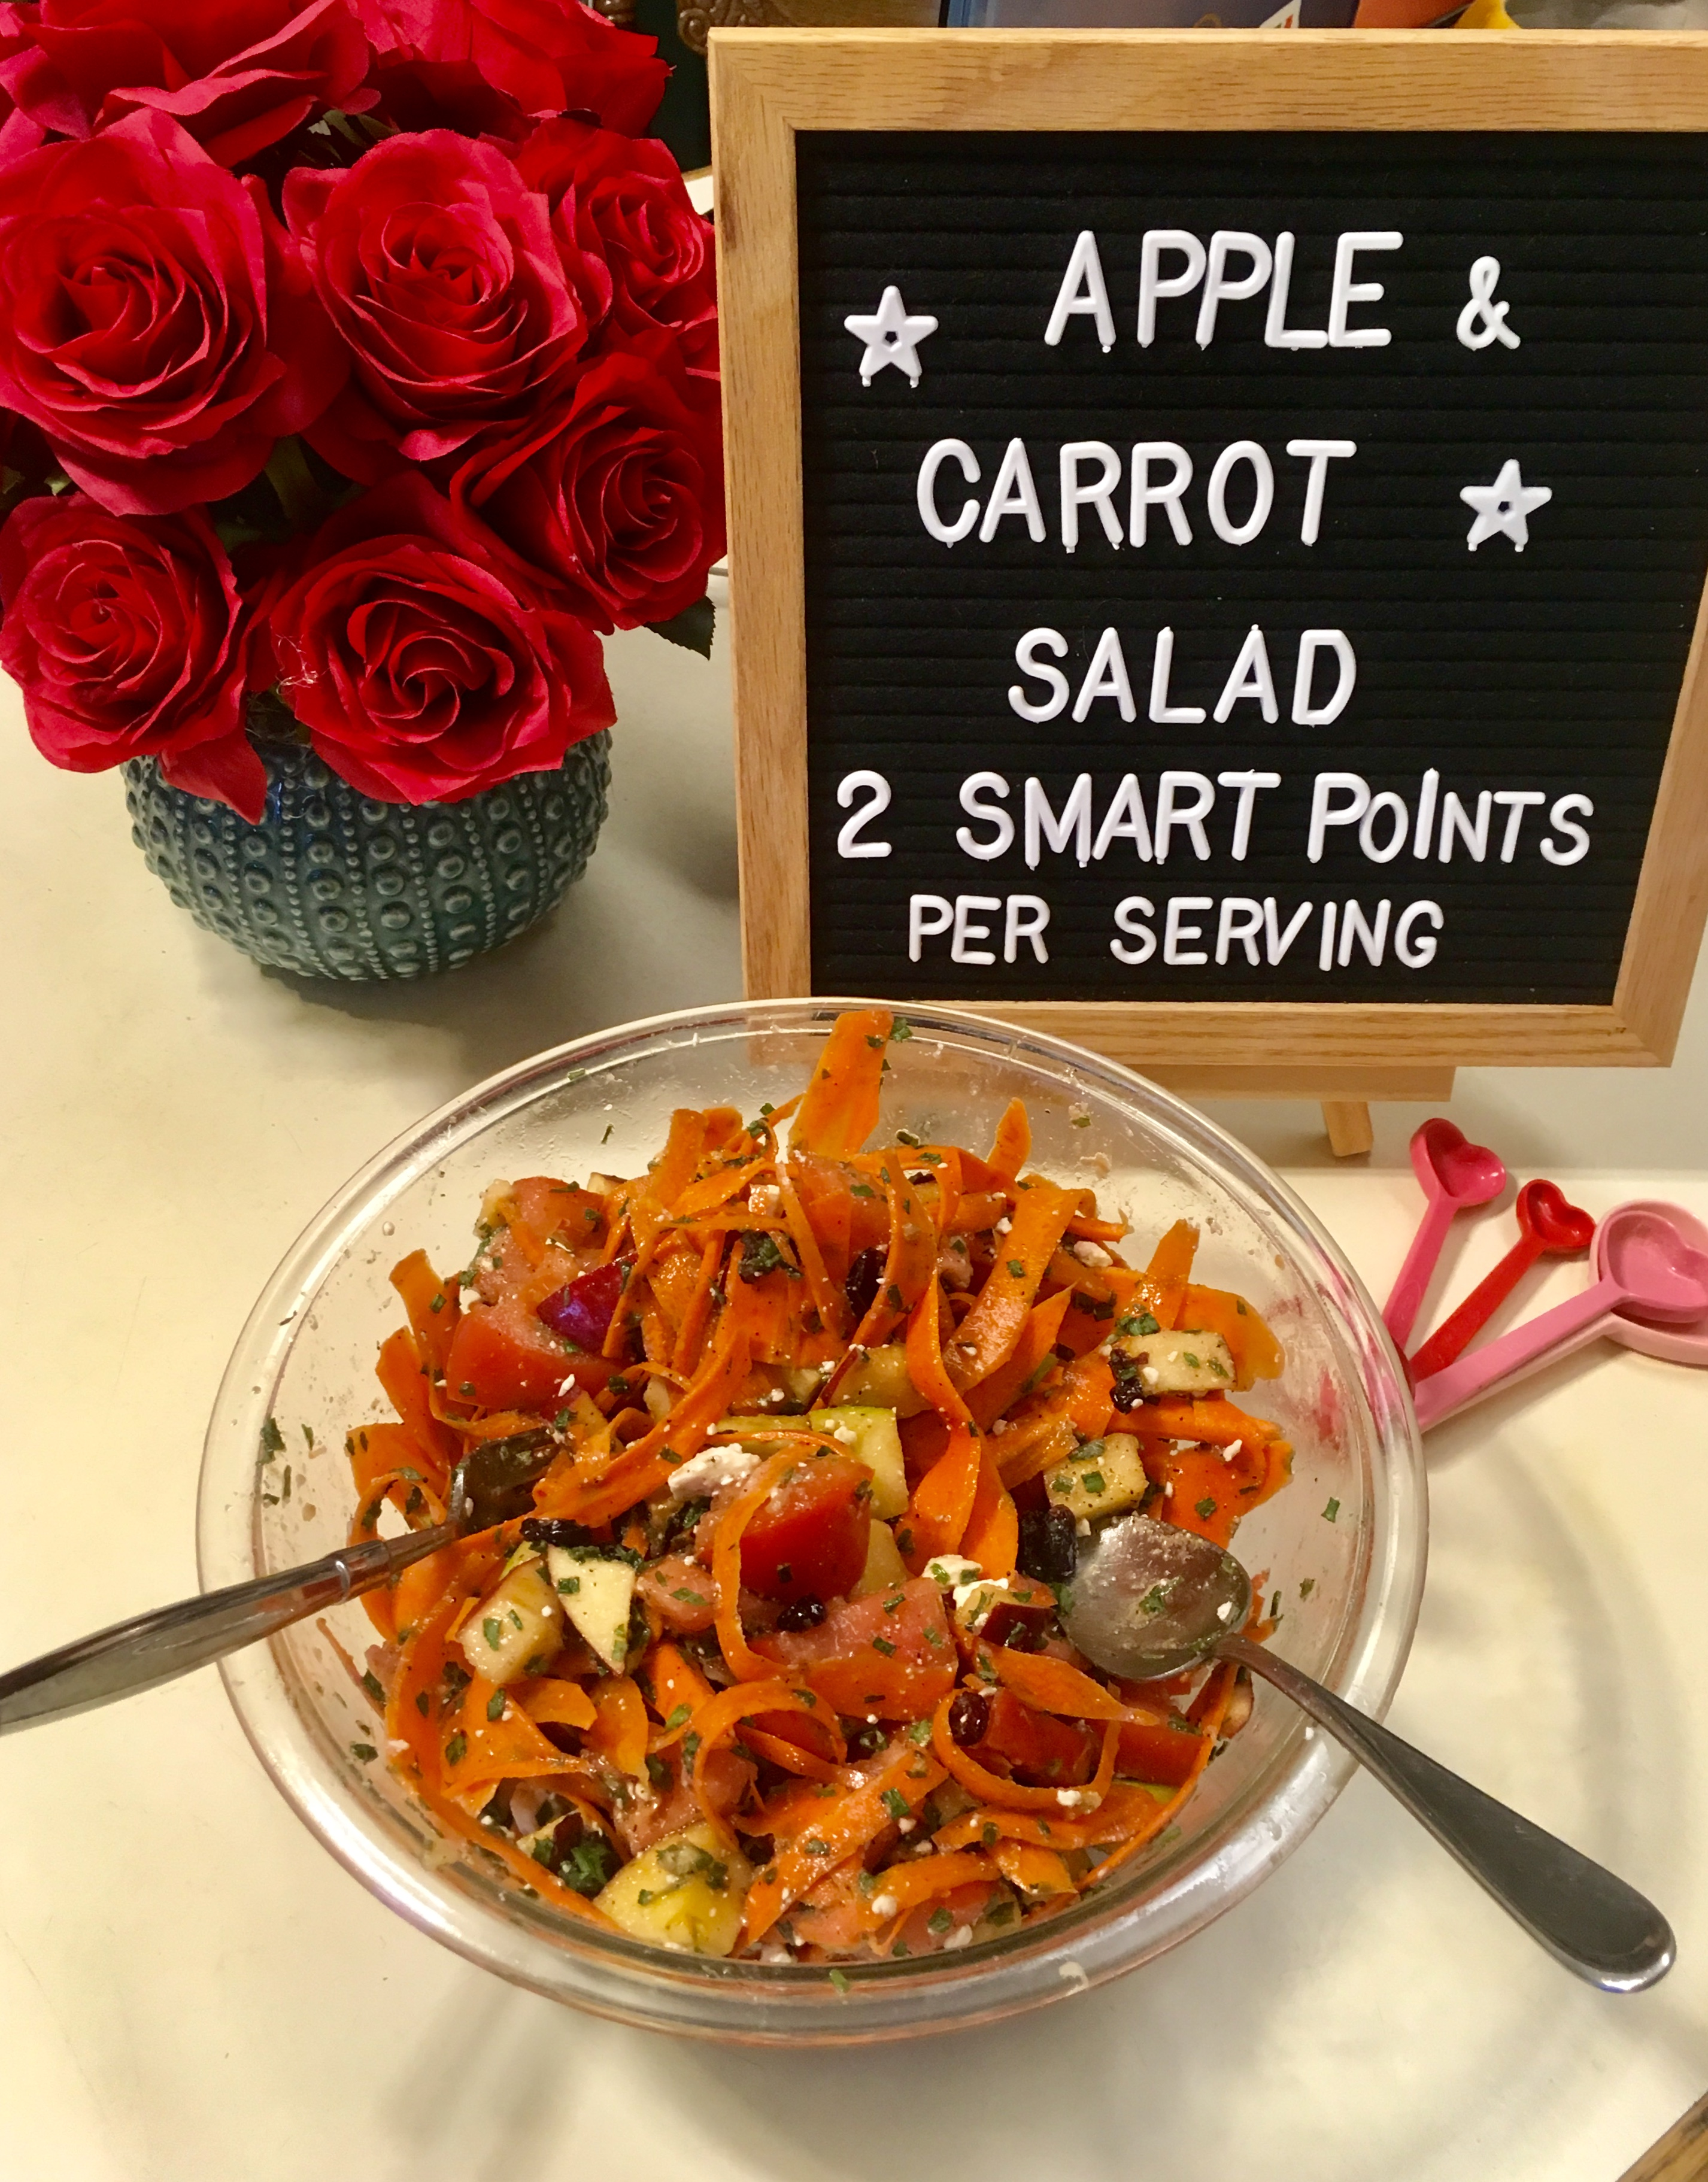 Apple and Carrot Salad just 2 smart points per serving recipe makes 8 servings